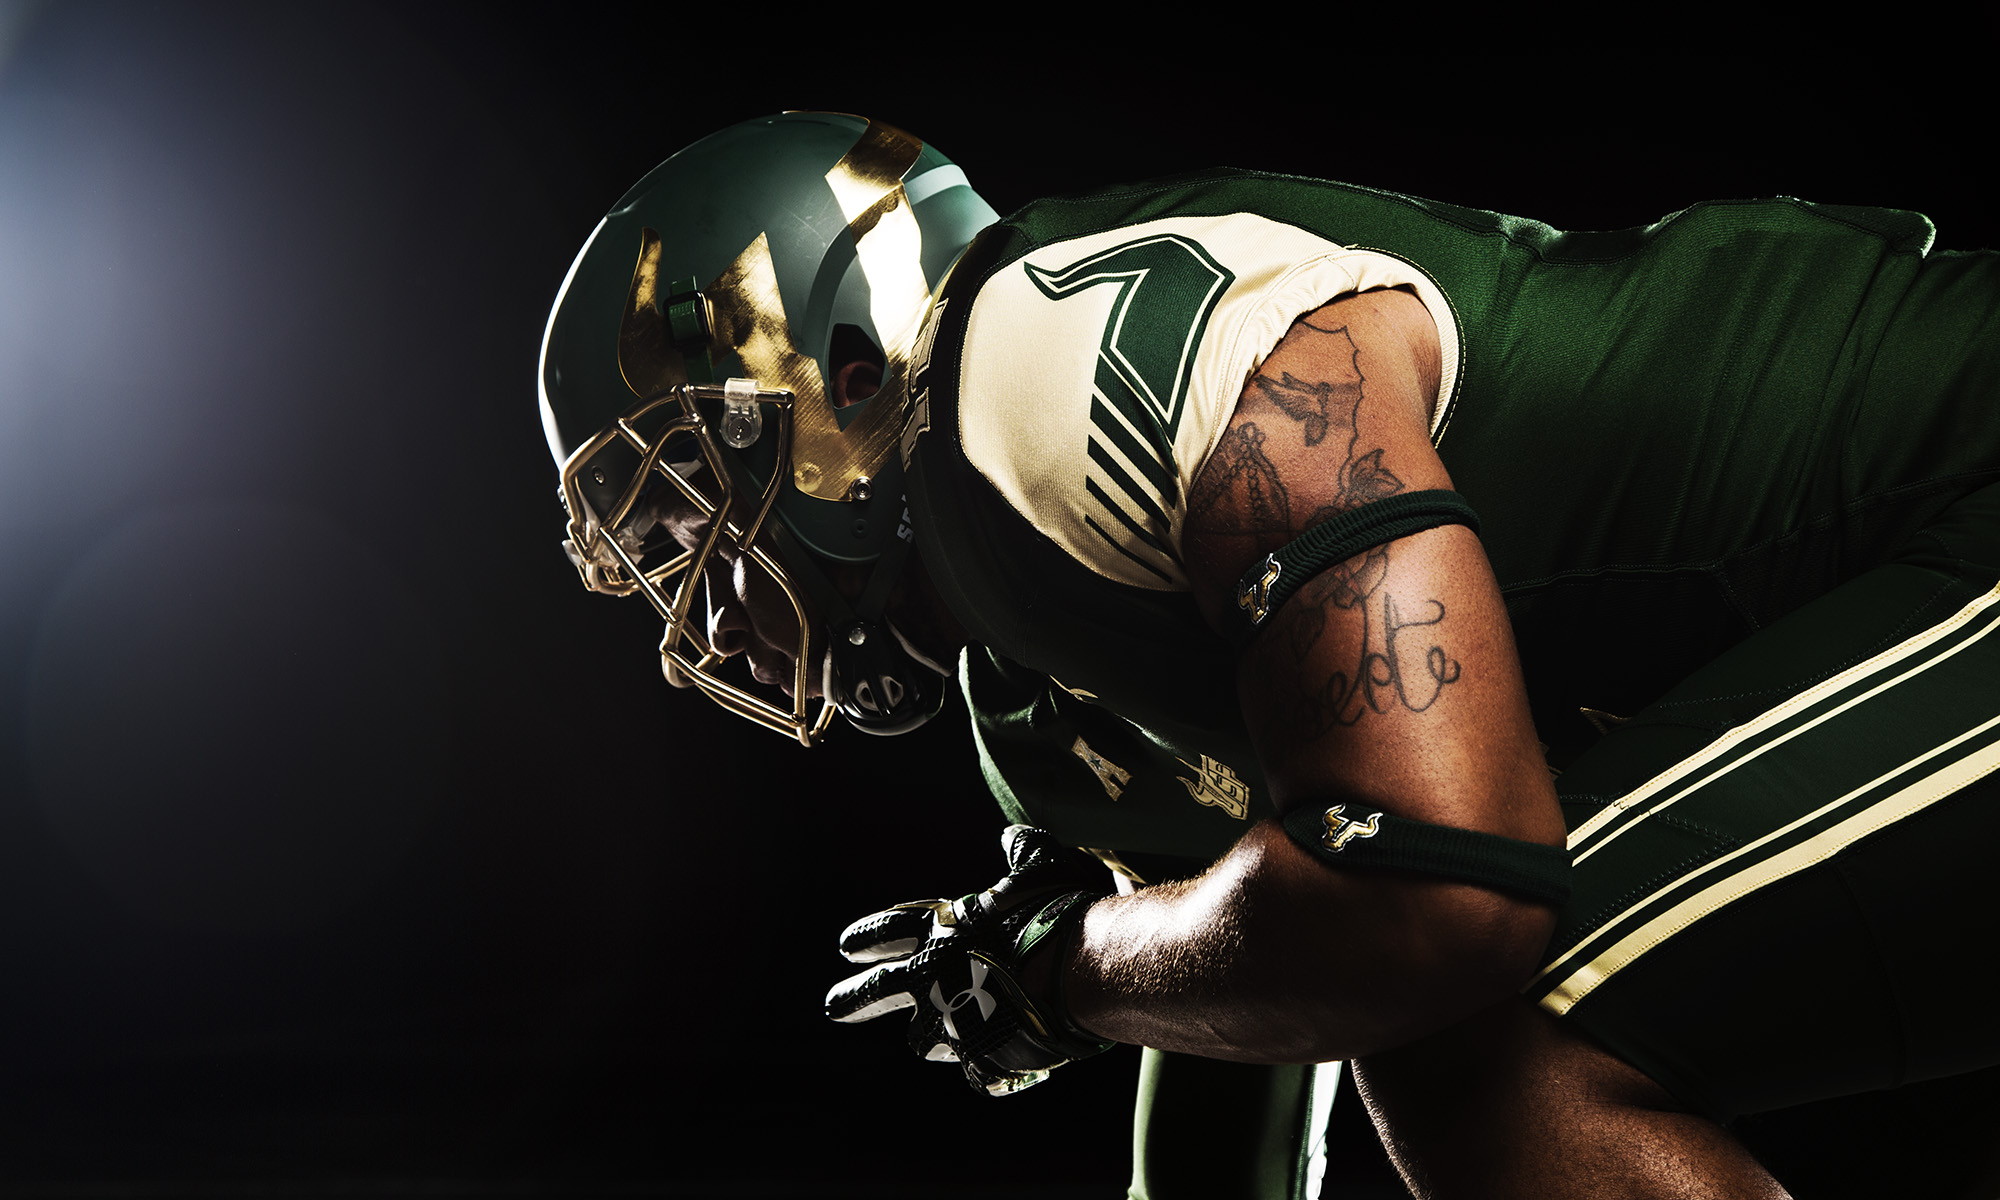 USF-Football-Green-261